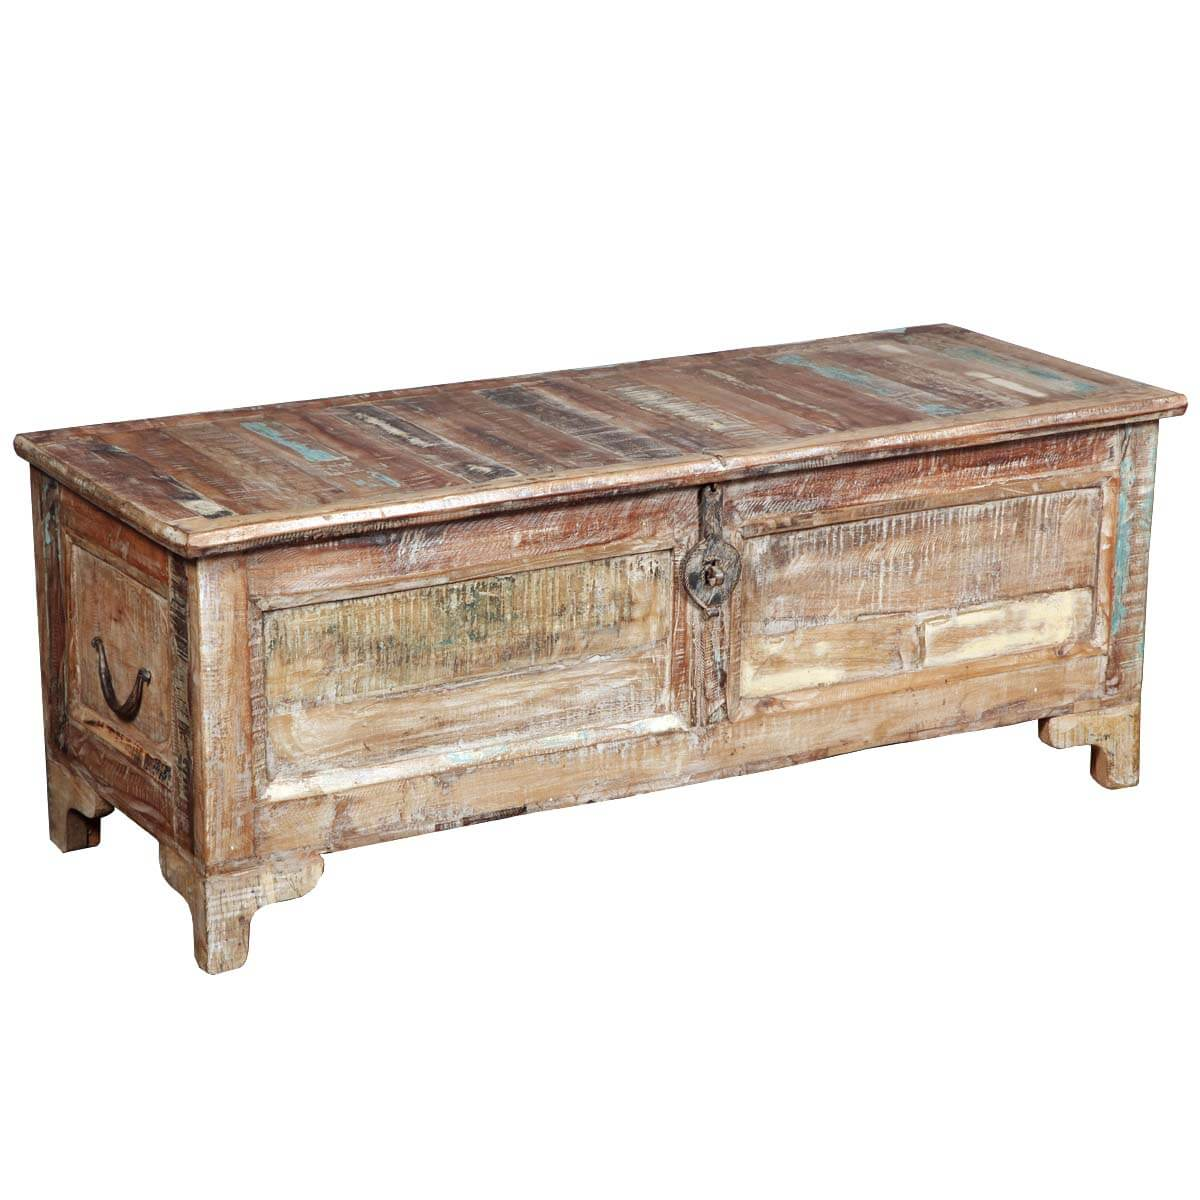 Rustic All Wood Coffee Table: Rustic Reclaimed Wood Storage Coffee Table Chest